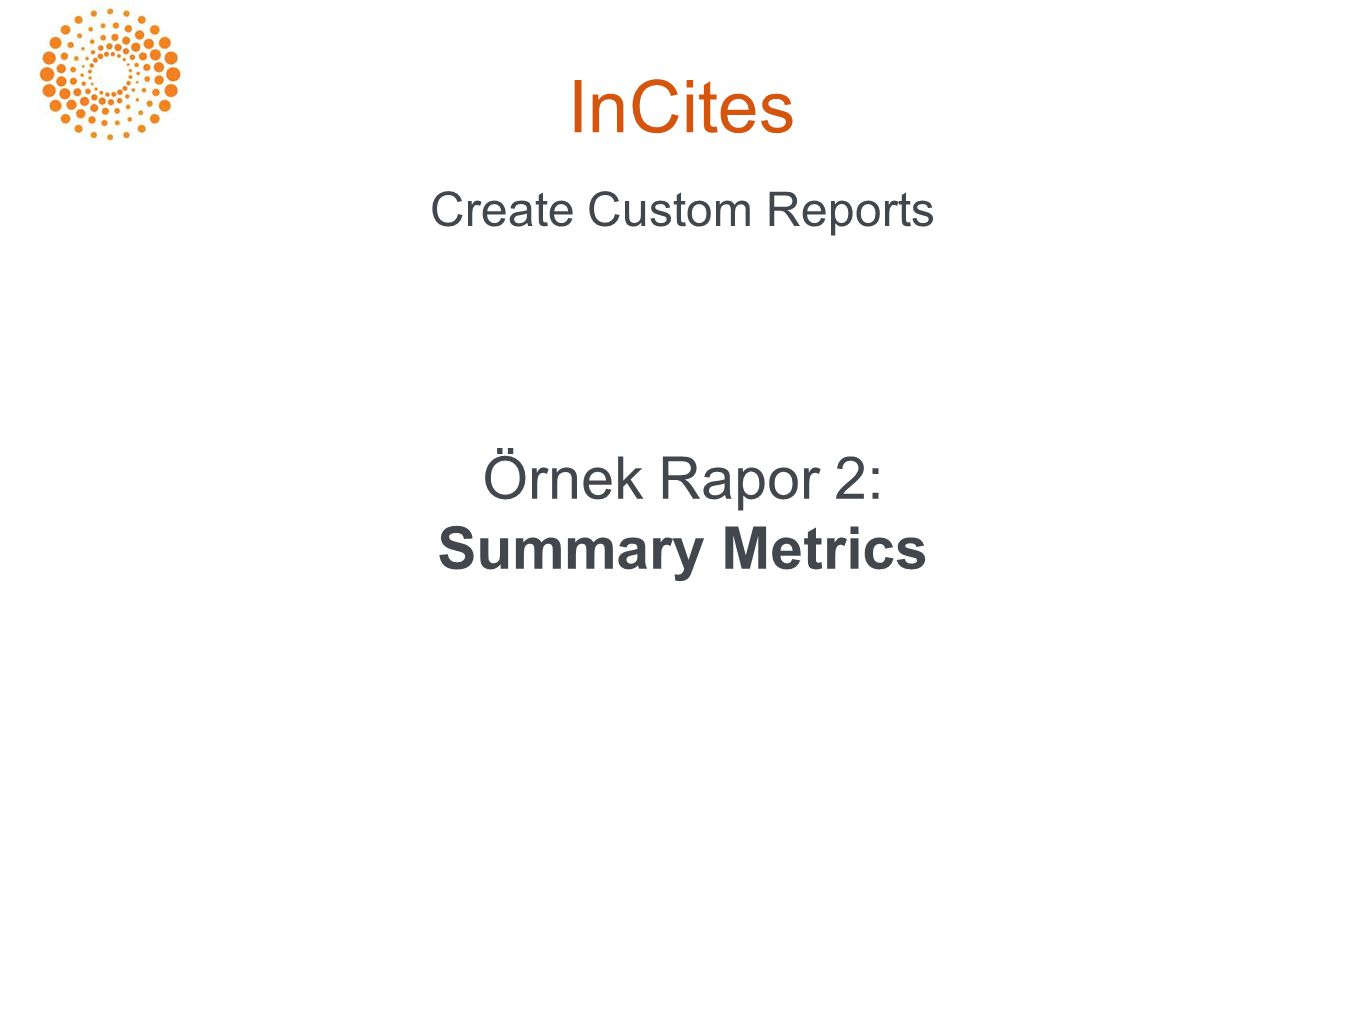 InCites Create Custom Reports Örnek Rapor 2: Summary Metrics